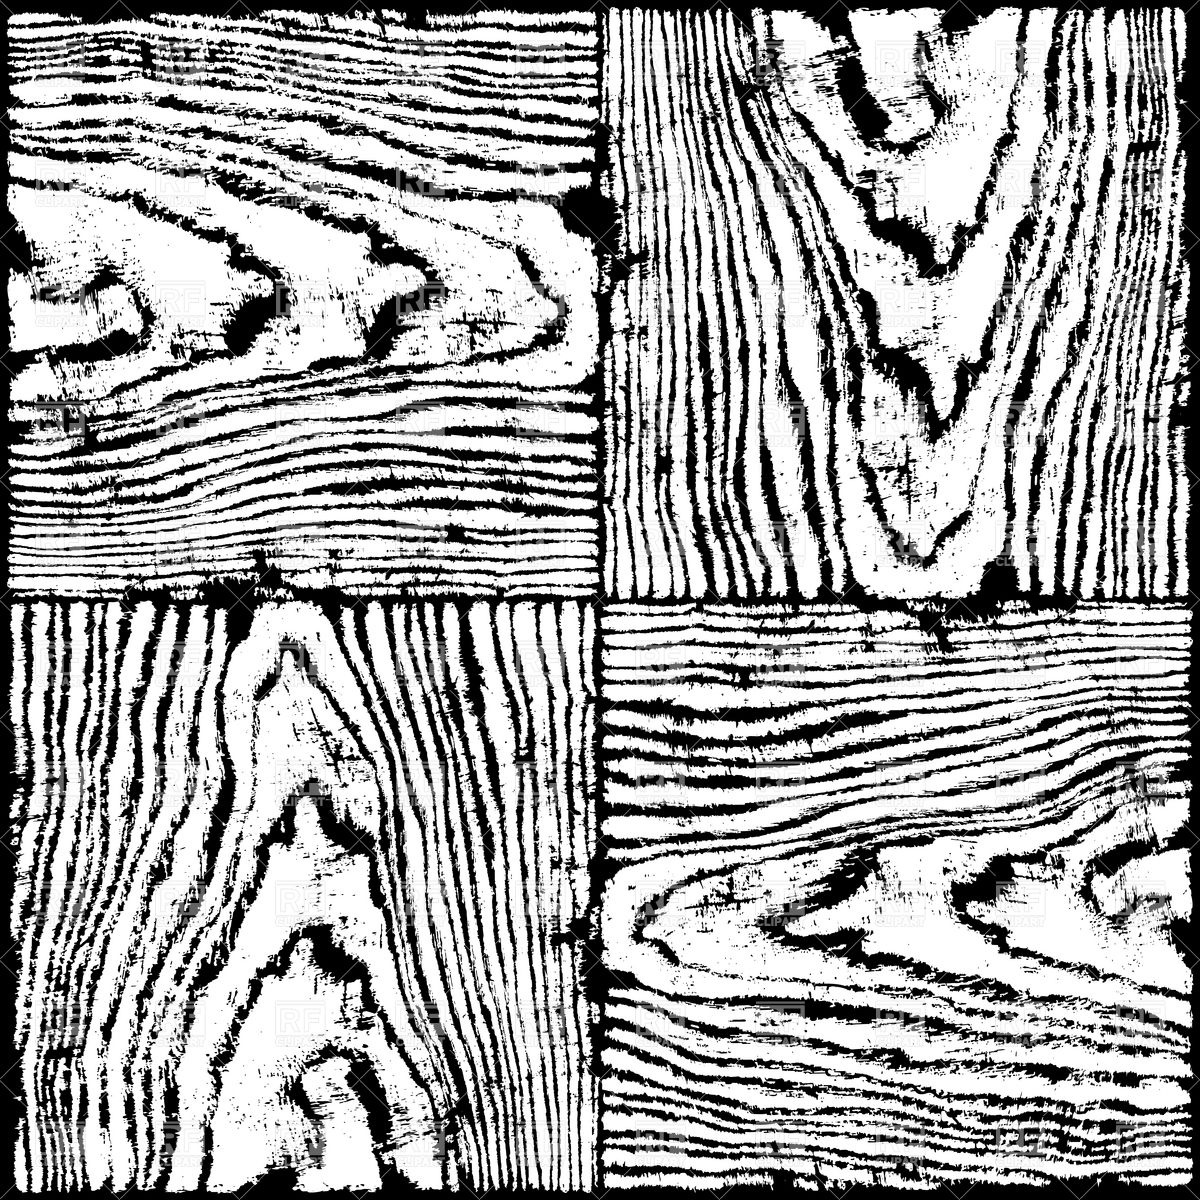 Drawn planks wooden Grain For wood the Wood